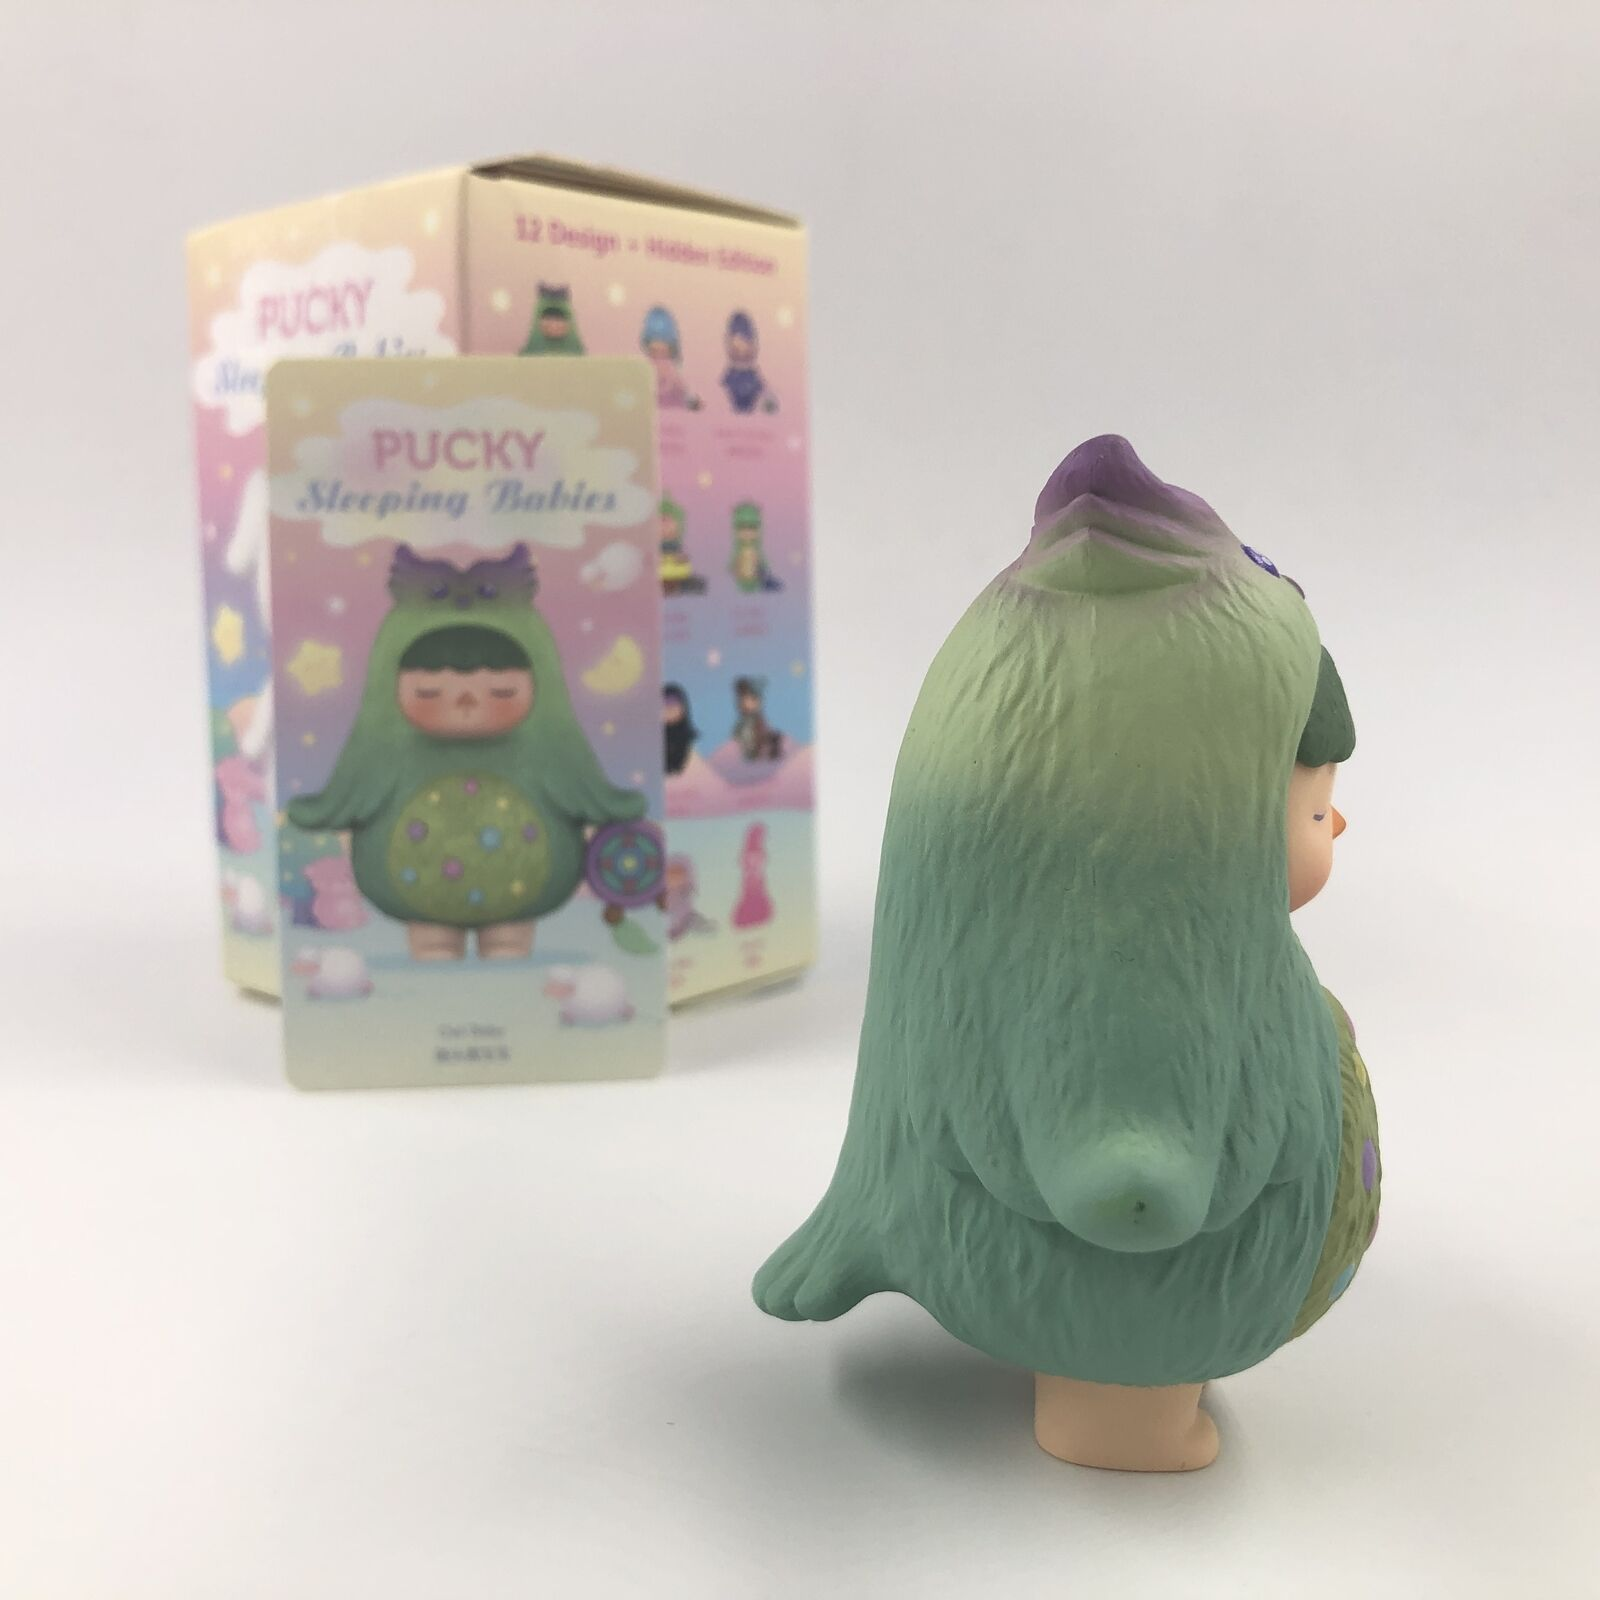 POP MART PUCKY Mini Figure Designer Toy Art Figurine Sleeping Babies Owl Baby